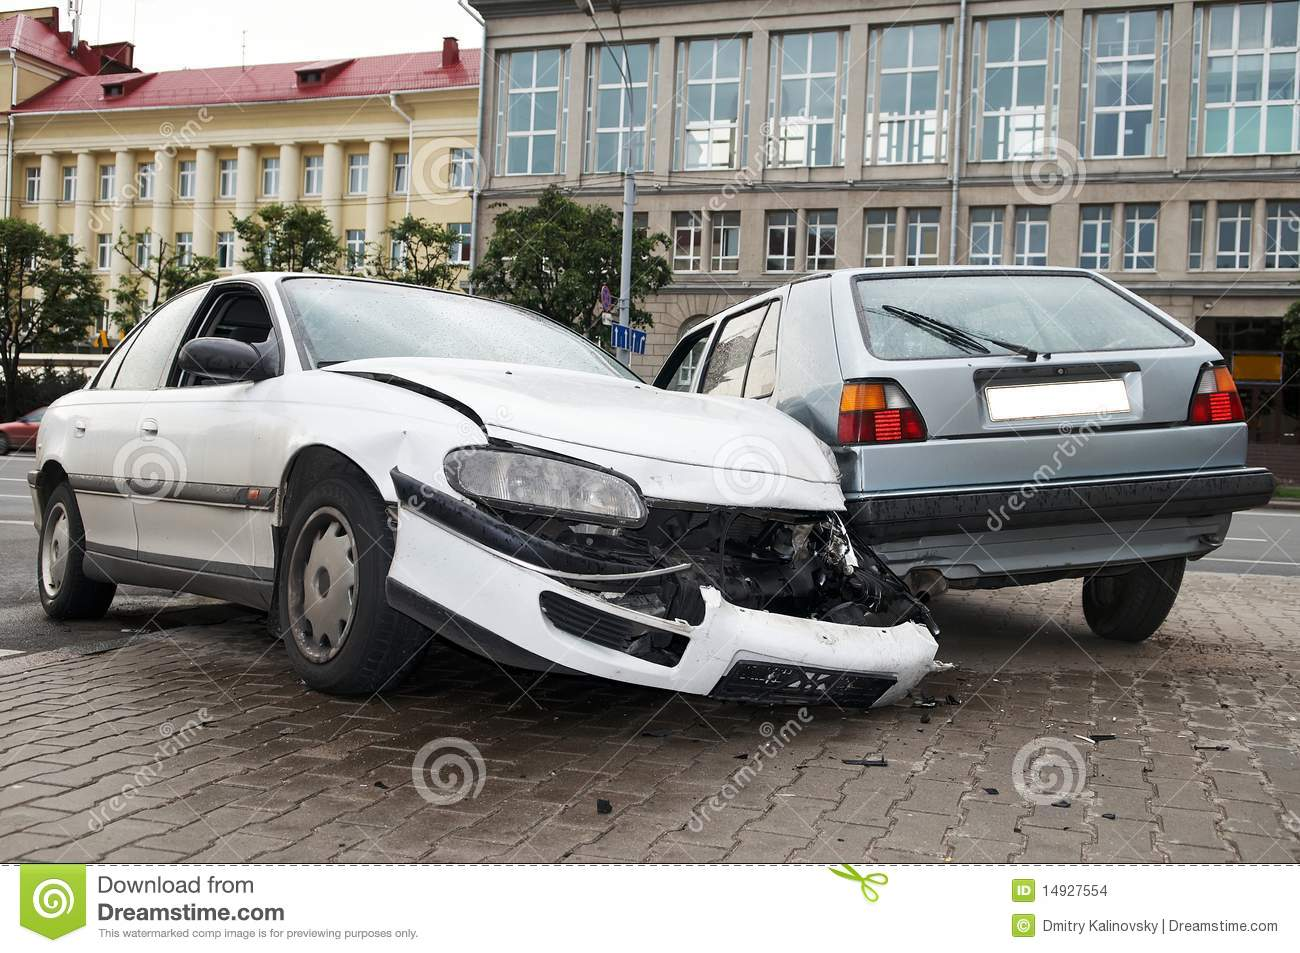 Heavy damage car accident stock photo. Image of breakdown - 14927554